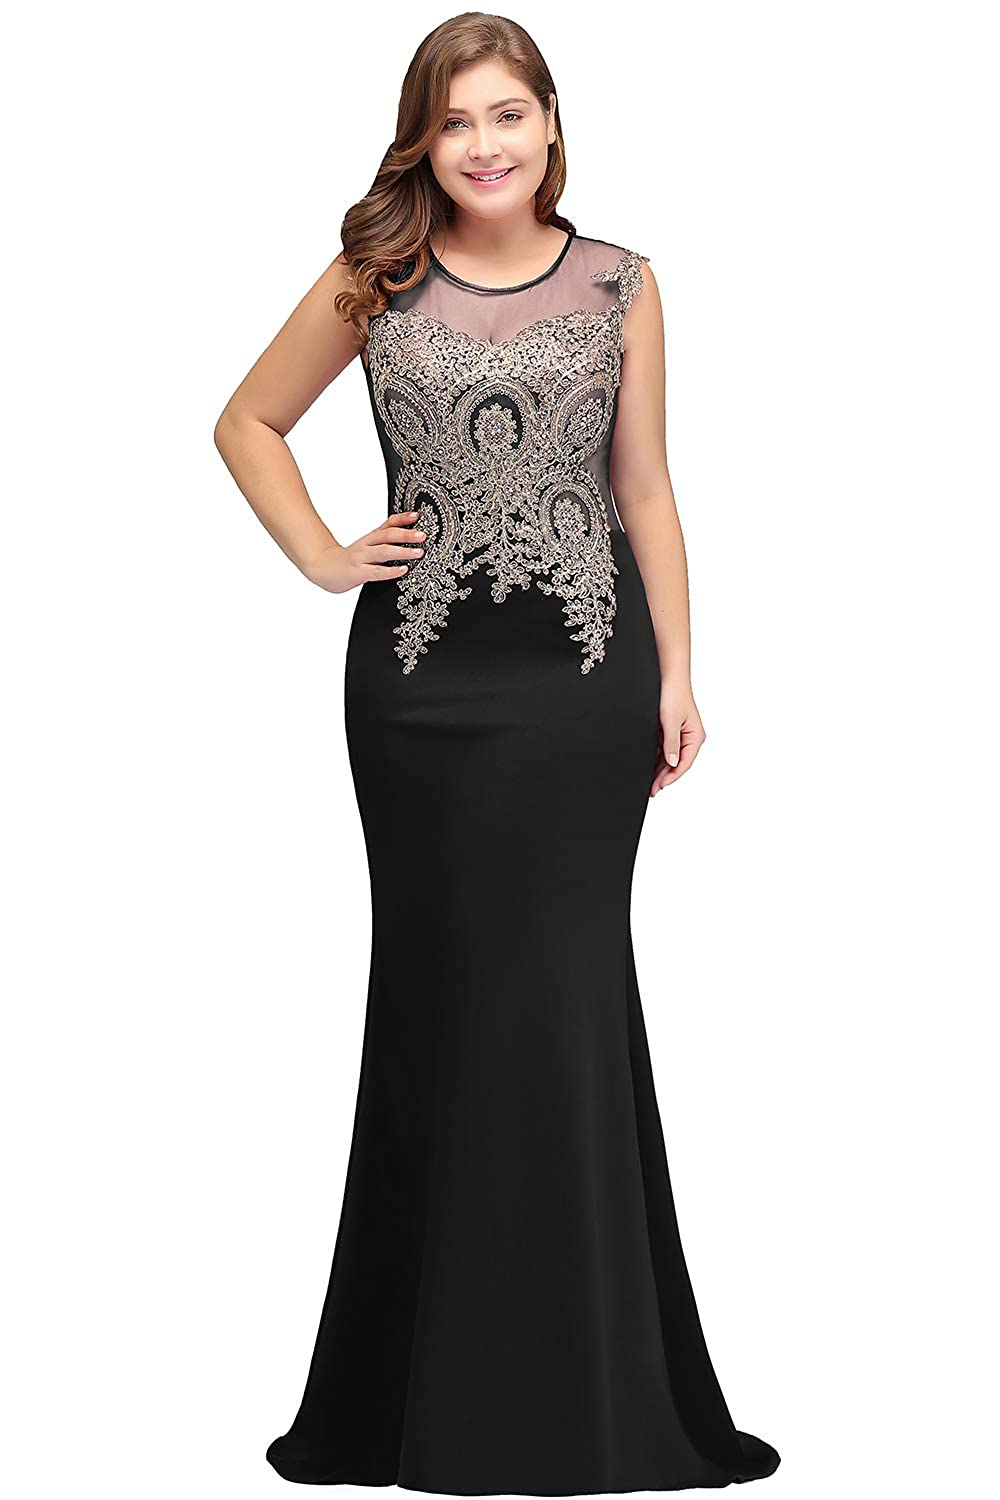 Babyonline Women Evening Gown Plus Size Mermaid Formal Dress at ...